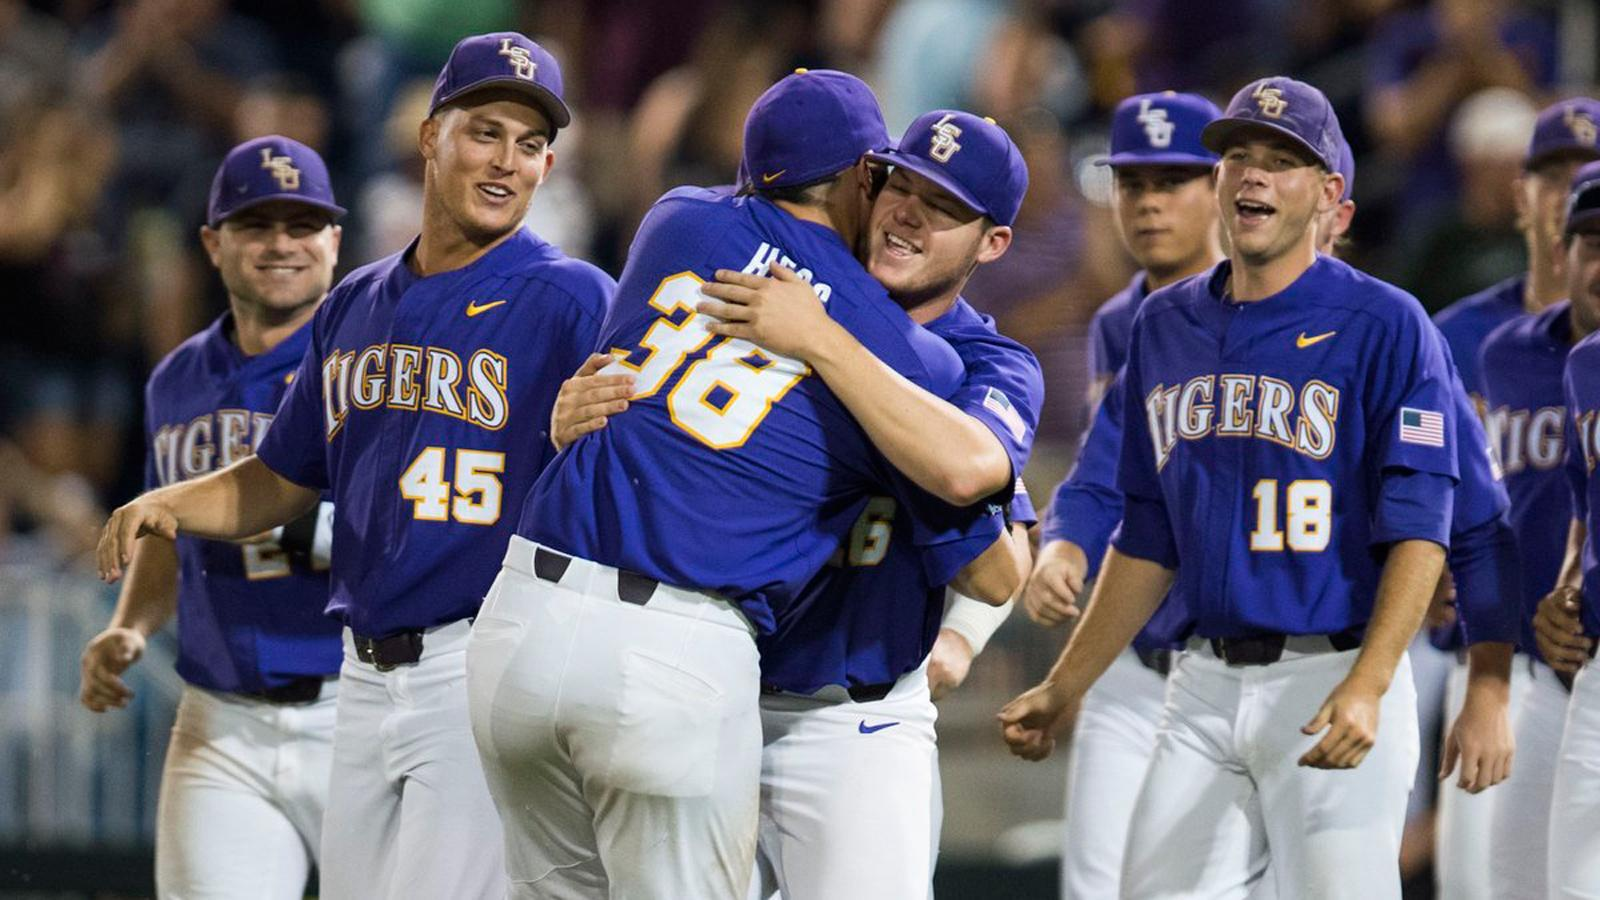 LSU tops Florida State to stay in CWS